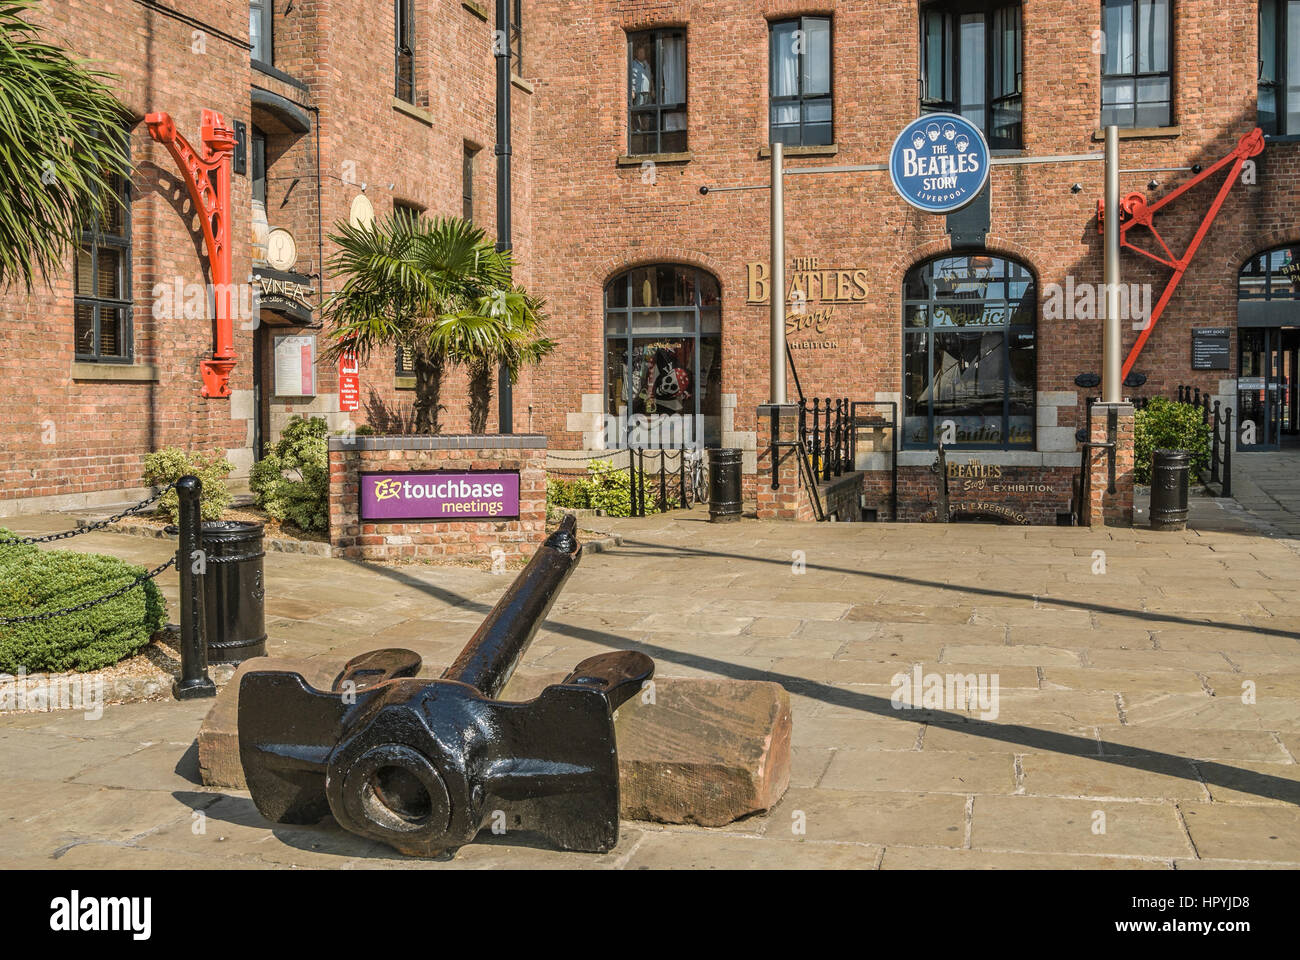 The Beatles Story is a unique visitor attraction located within Liverpool's historic Albert Dock. - Stock Image